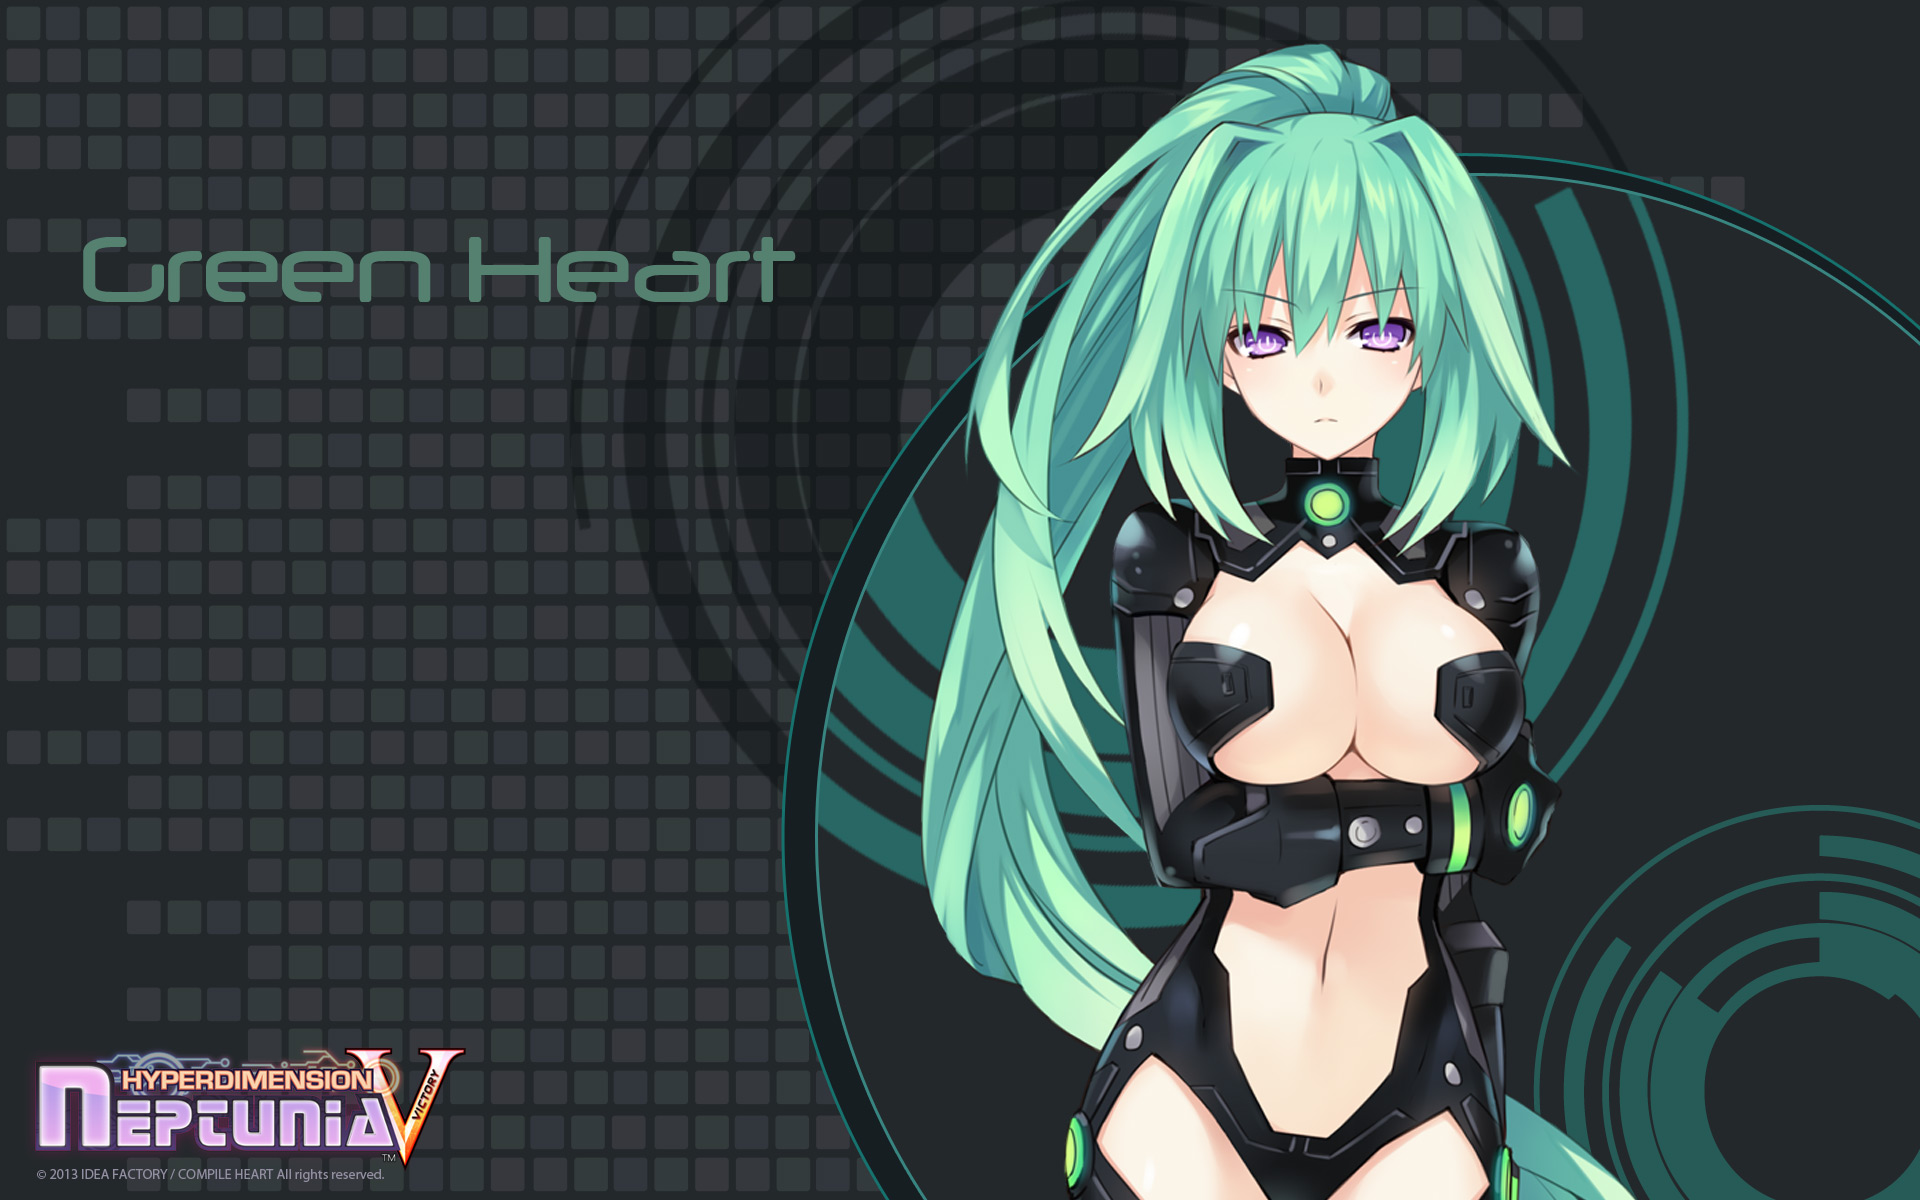 Konachan.com - 156088 green_hair green_heart hyperdimension_neptunia long_hair purple_eyes tsunako